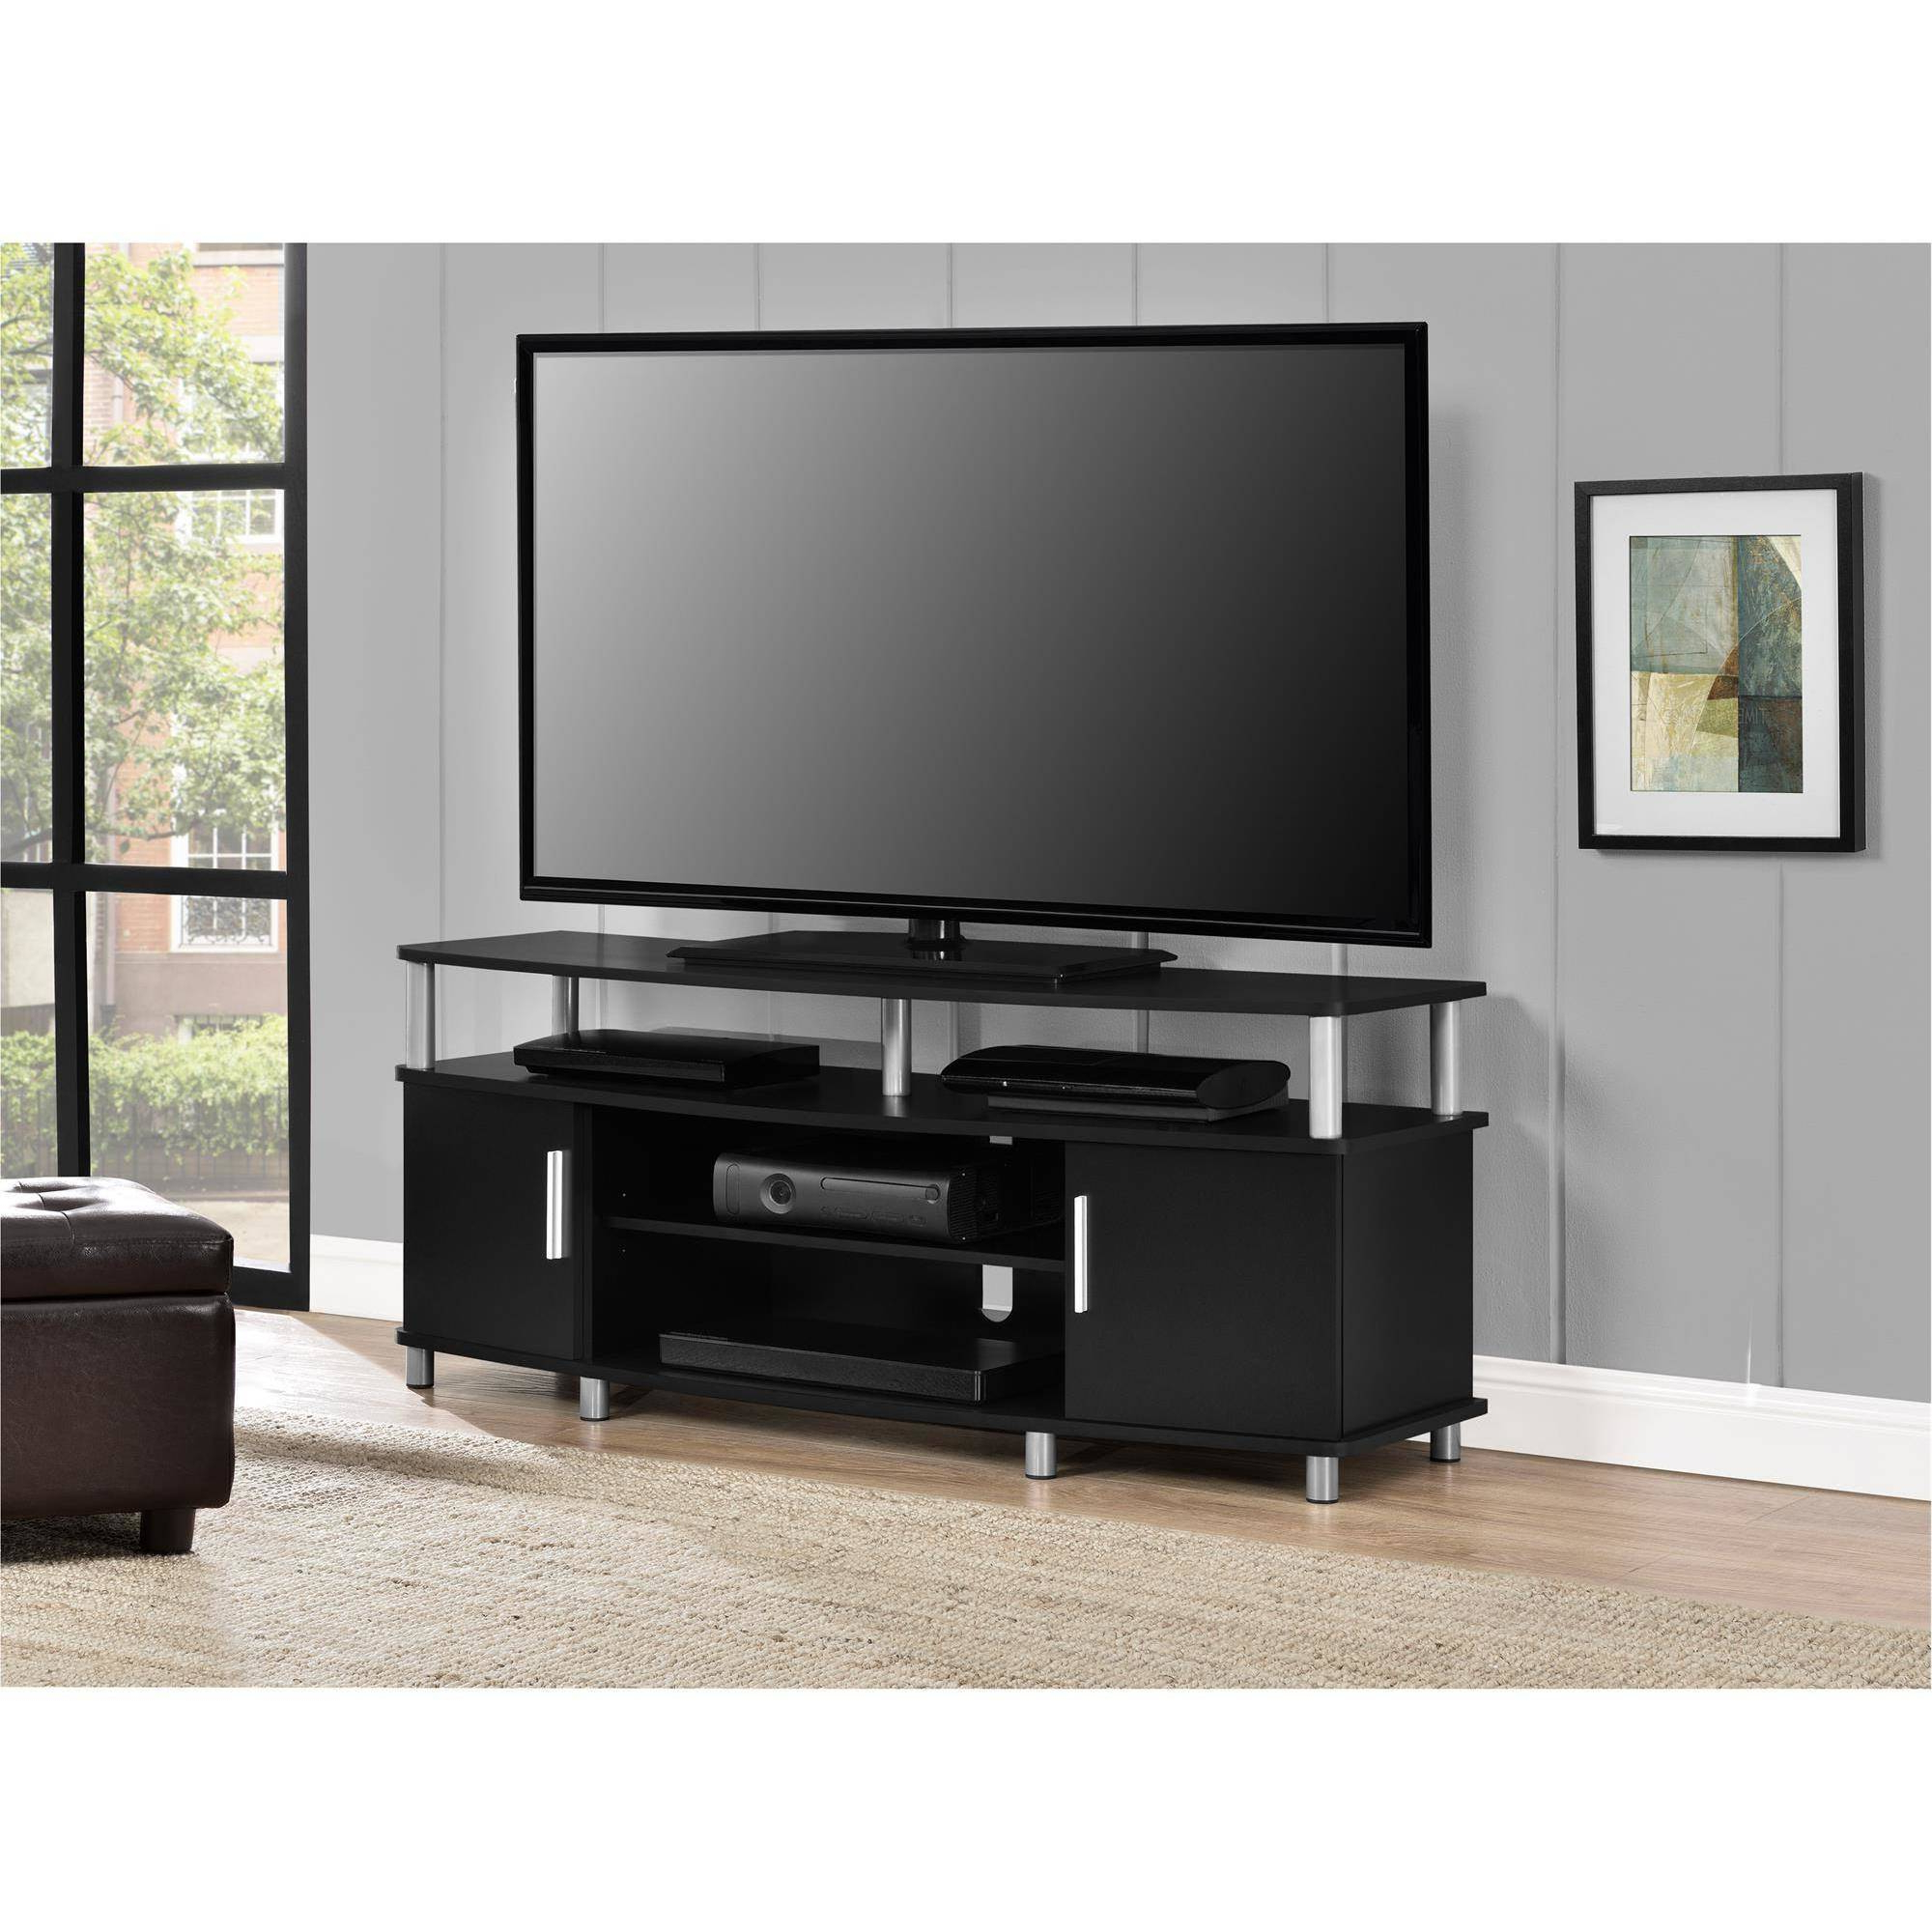 """Deco Wide Tv Stands For Popular Carson Tv Stand For Tvs Up To 50"""" Wide, Black – Walmart (View 4 of 10)"""